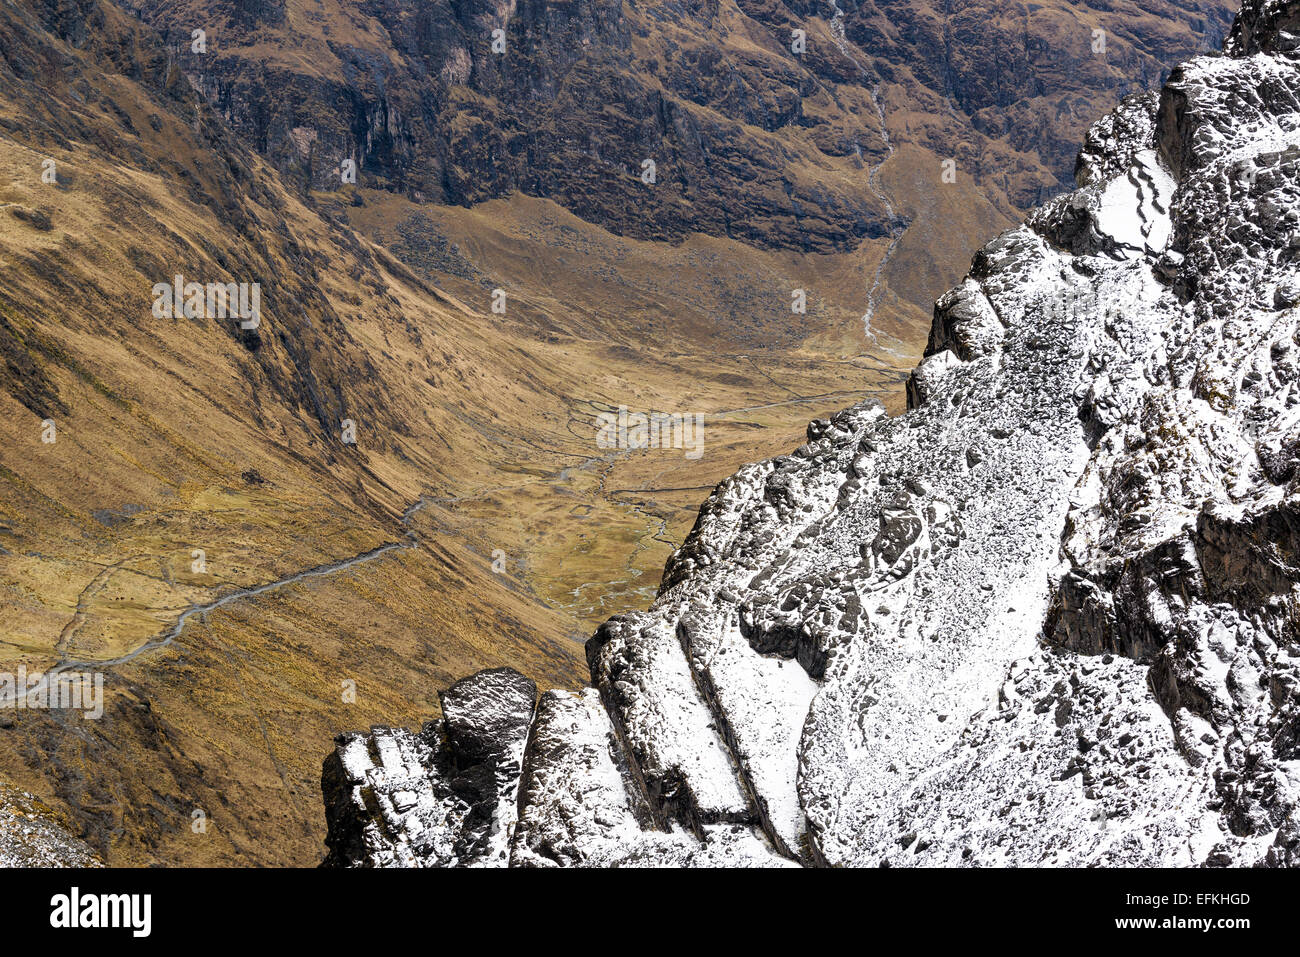 Looking down from the snowy Andes mountains to a trail passing through a valley near La Paz, Bolivia - Stock Image